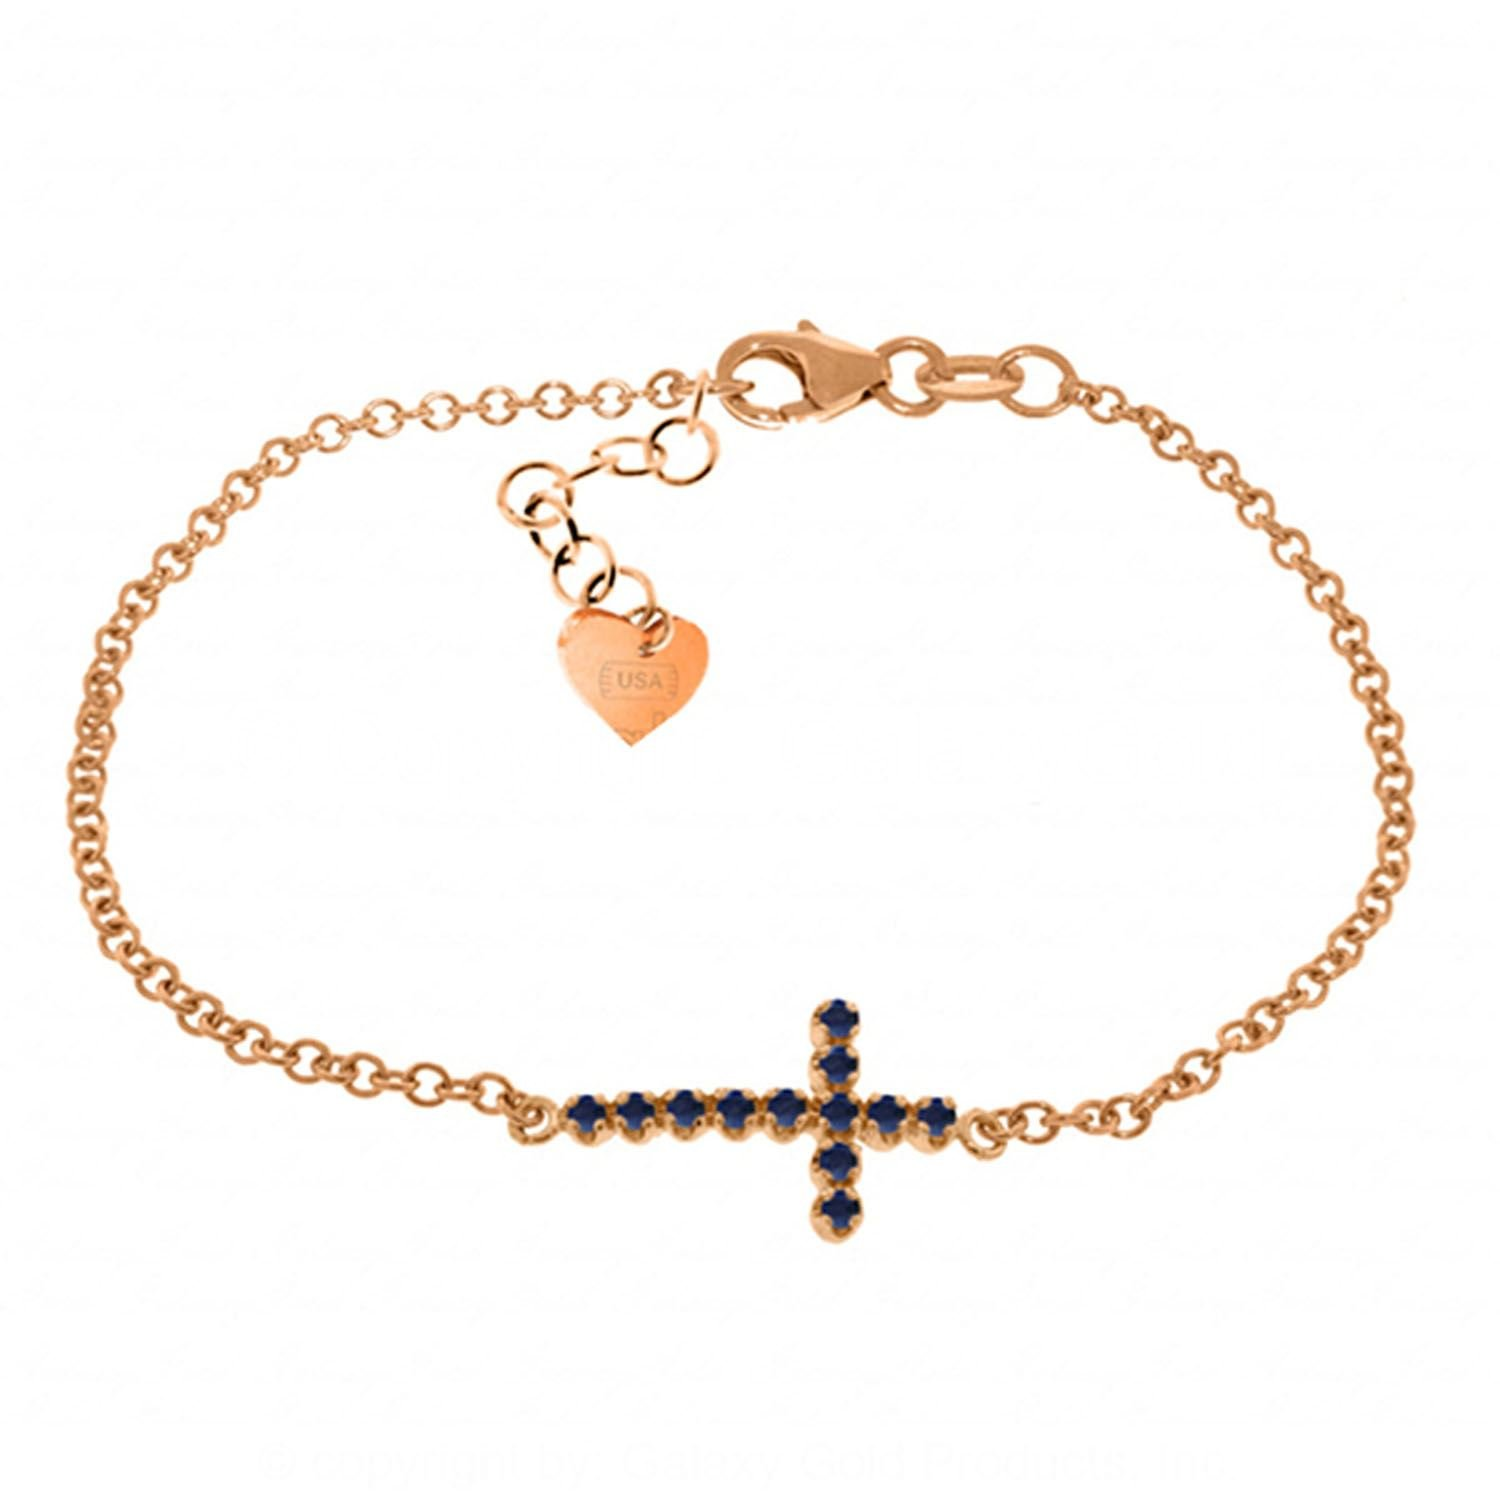 ALARRI 0.3 CTW 14K Solid Rose Gold Cross Bracelet Round Sapphire Size 7 Inch Length